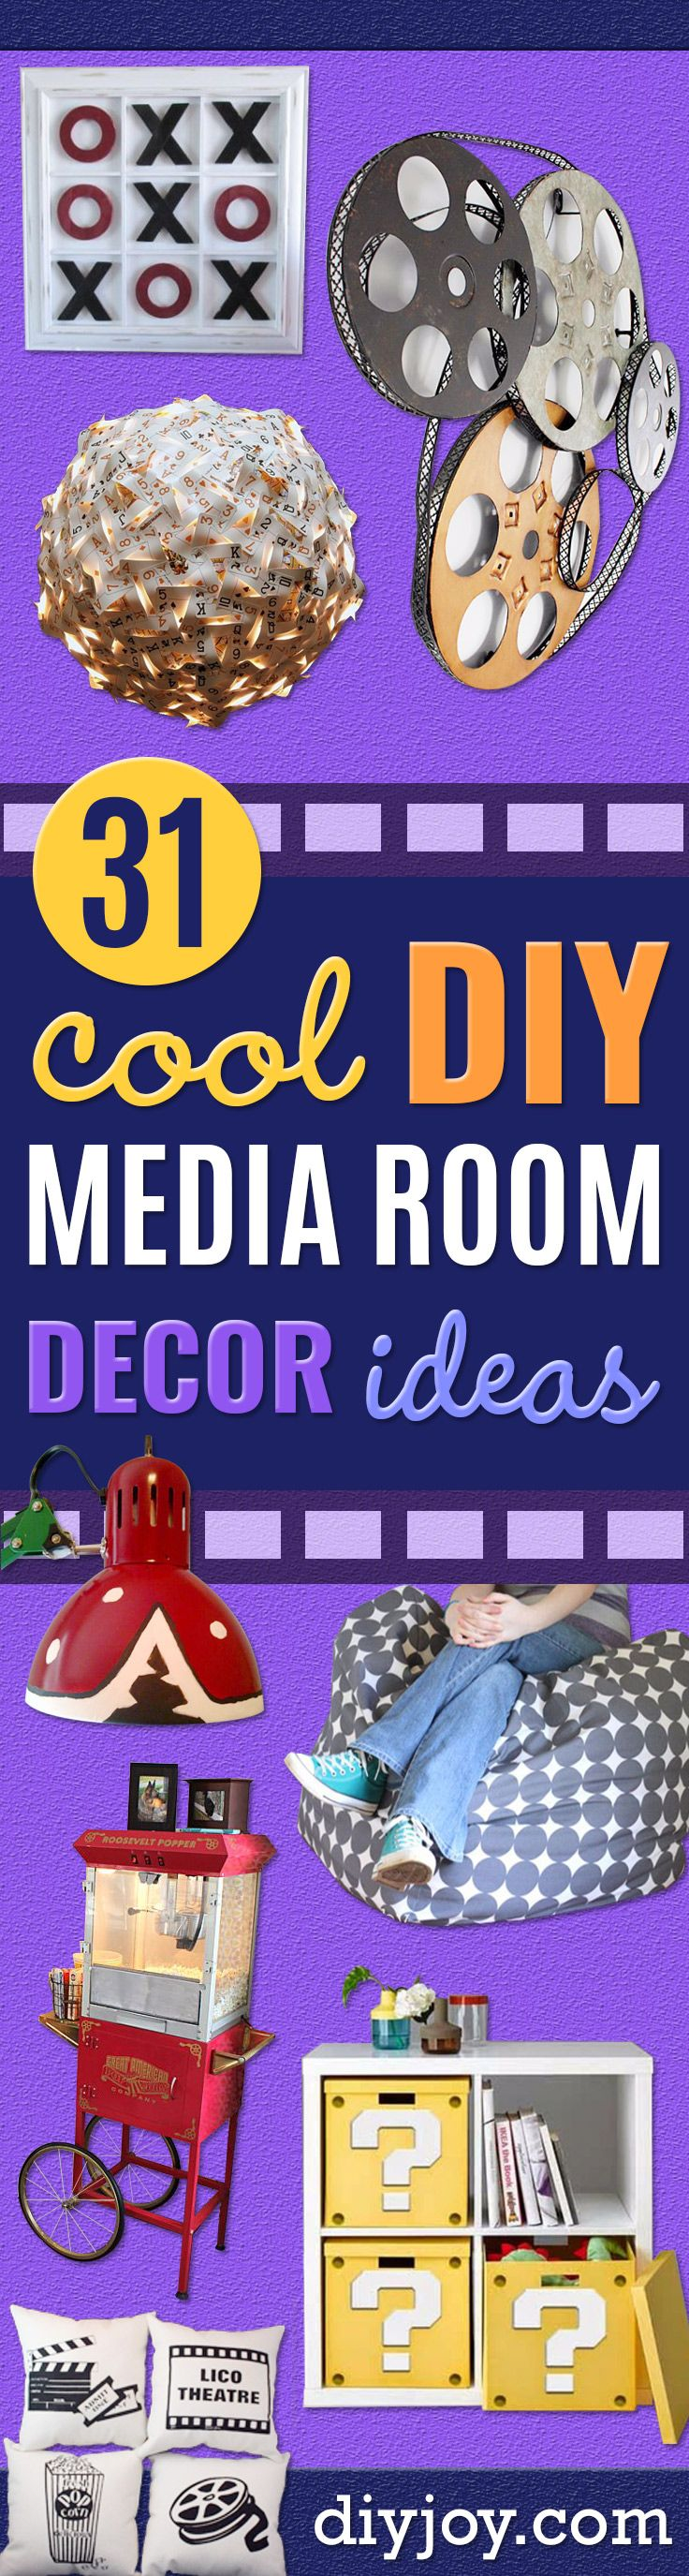 DIY Media Room Ideas - Do It Yourslef TV Consoles, Wall Art, Sofas and Seating, Chairs, TV Stands, Remote Holders and Shelving Tutorials - Creative Furniture for Movie Rooms and Video Game Stations http://diyjoy.com/diy-media-room-ideas